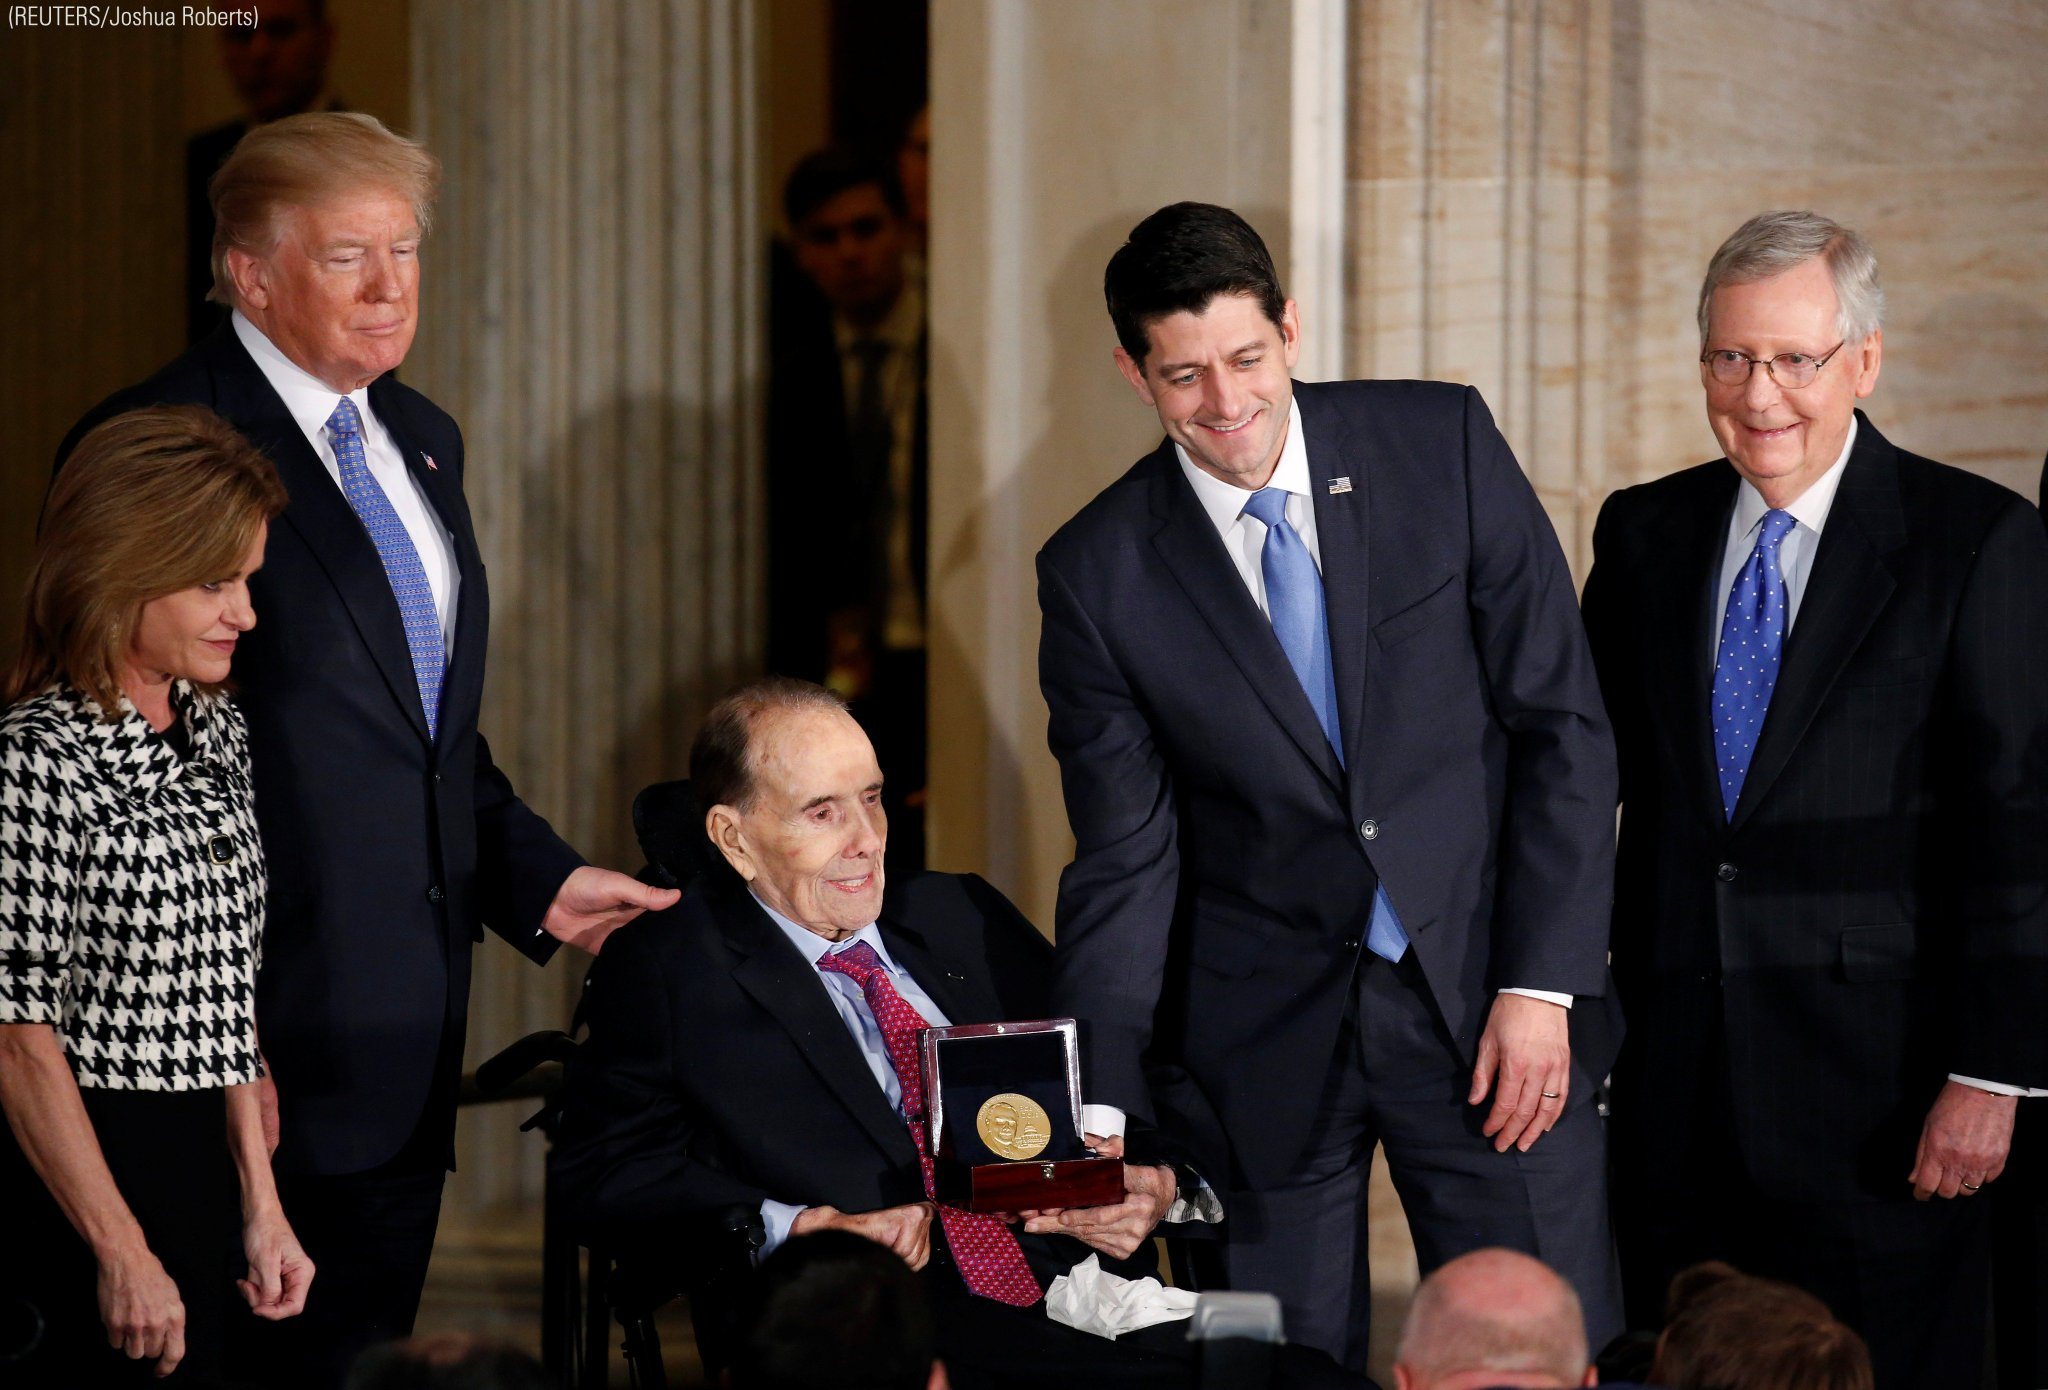 'As Honorable As They Come': @SenatorDole Awarded Congressional Gold Medal https://t.co/BPy4RvWEGj https://t.co/unDNWfbTkU